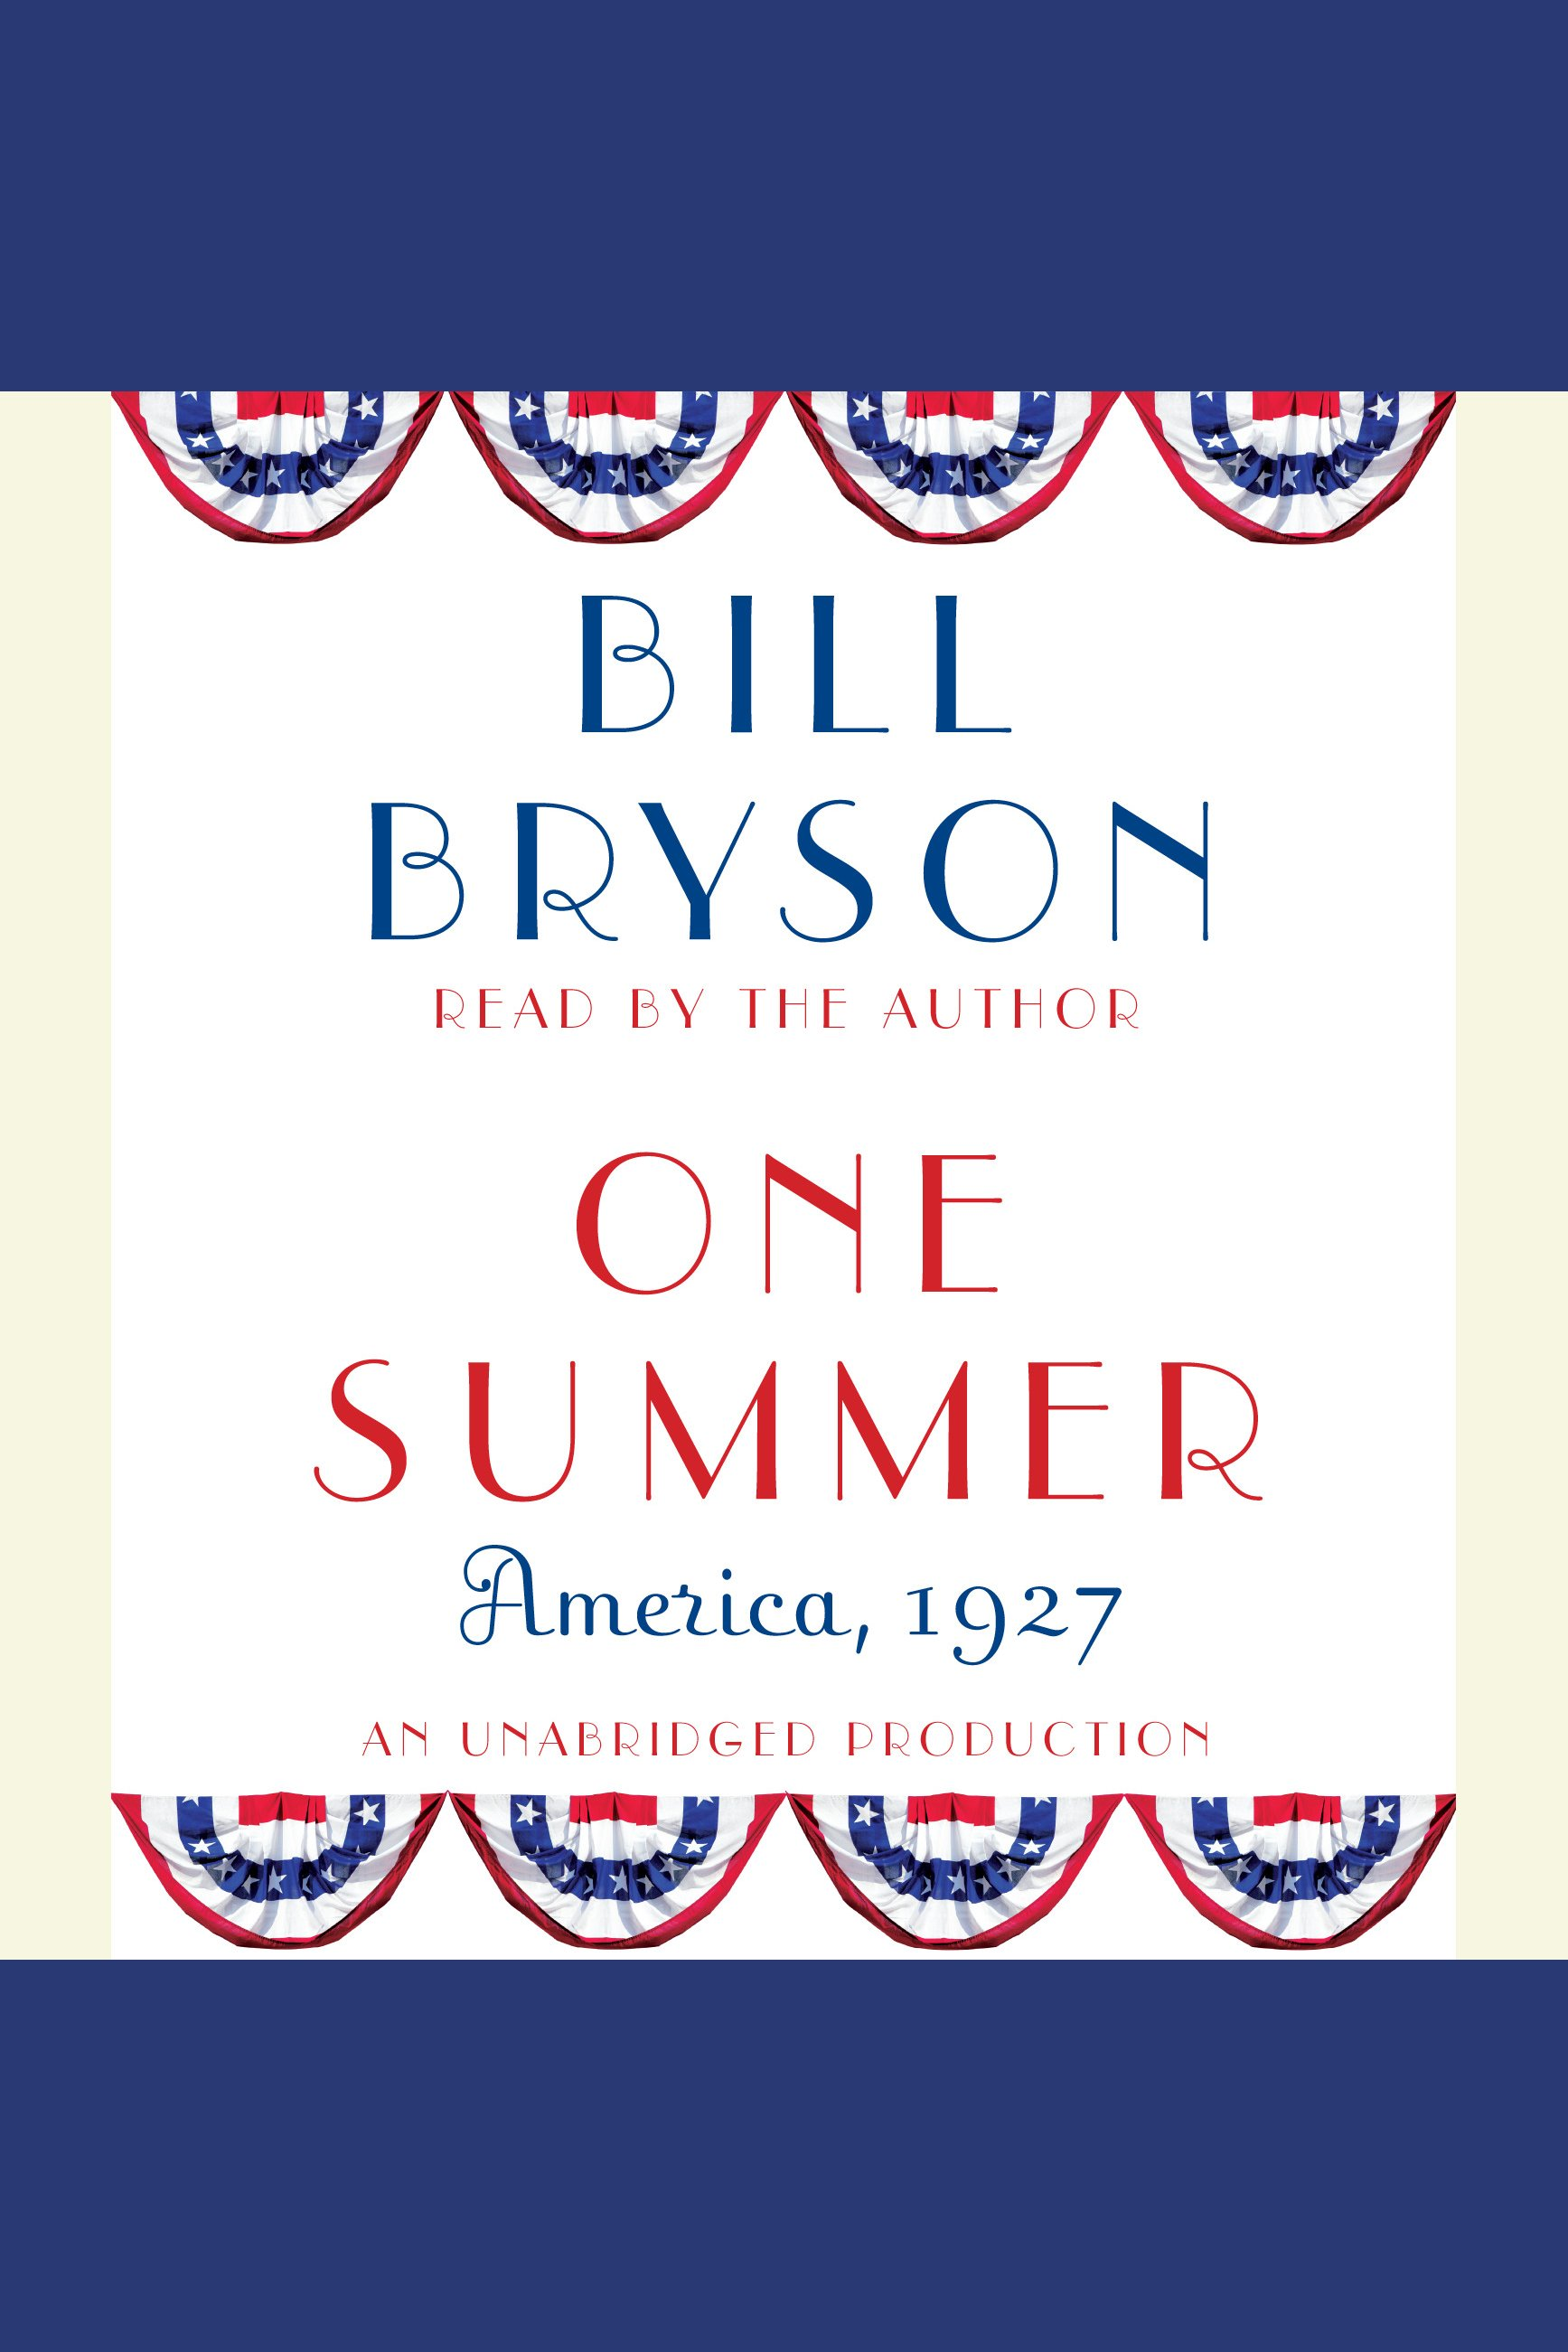 One summer America, 1927 cover image